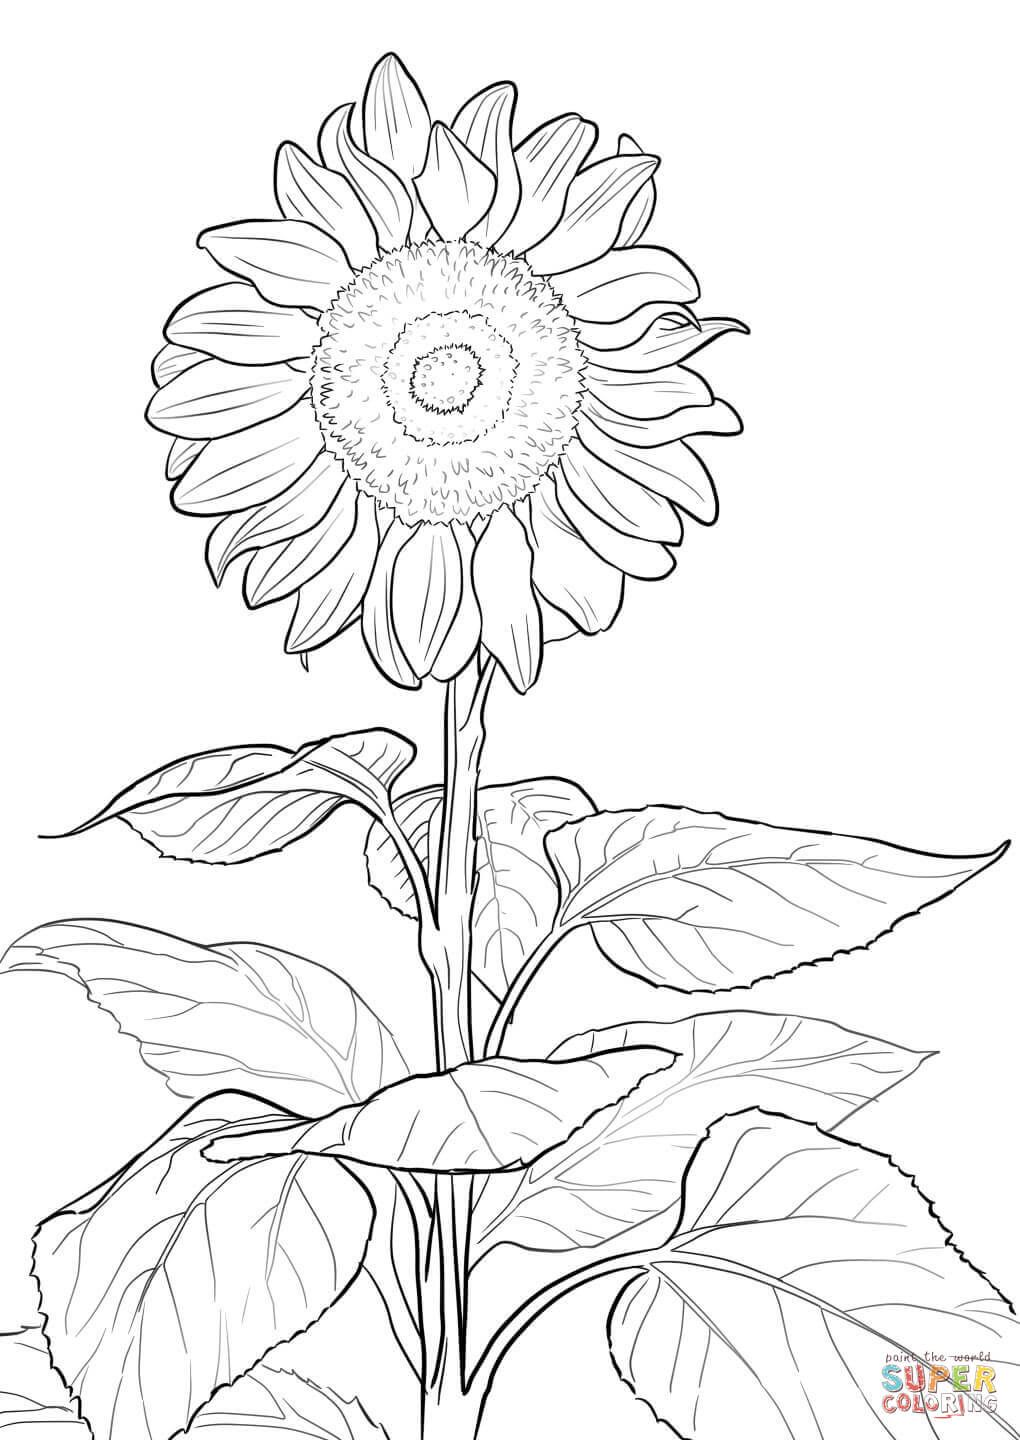 Sunflower | Super Coloring | Craft Ideas | Pinterest | Sonnenblume ...